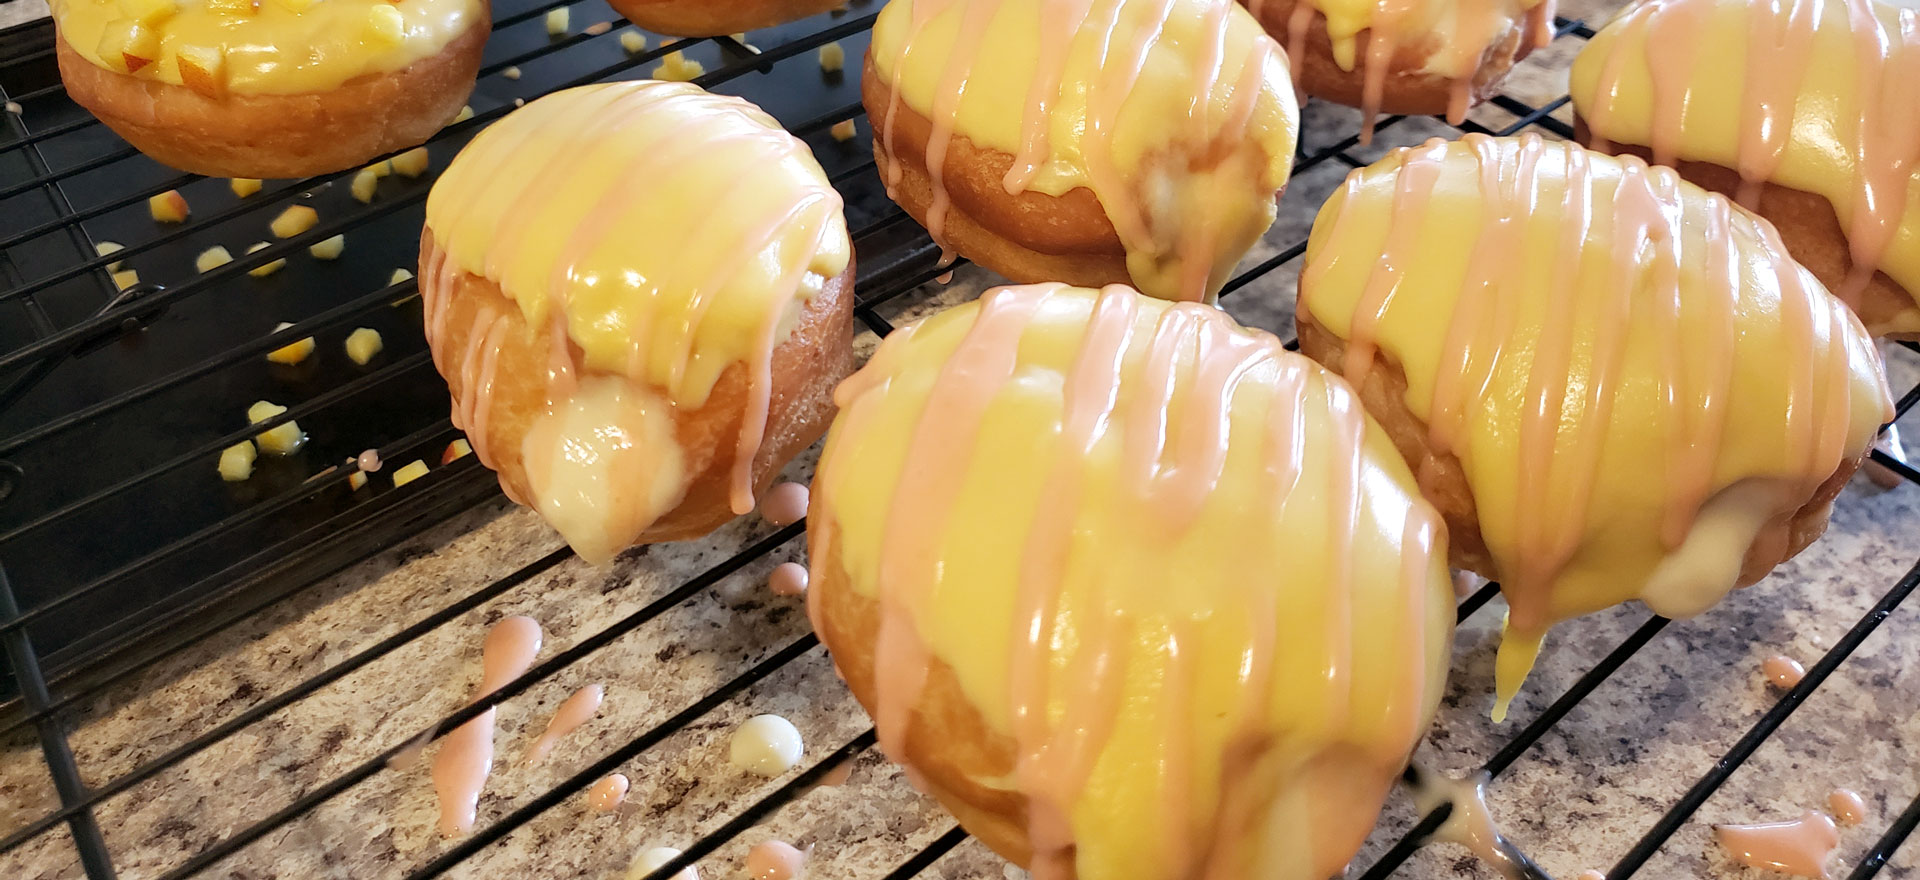 Pastry cream donut with cream and pink frosting